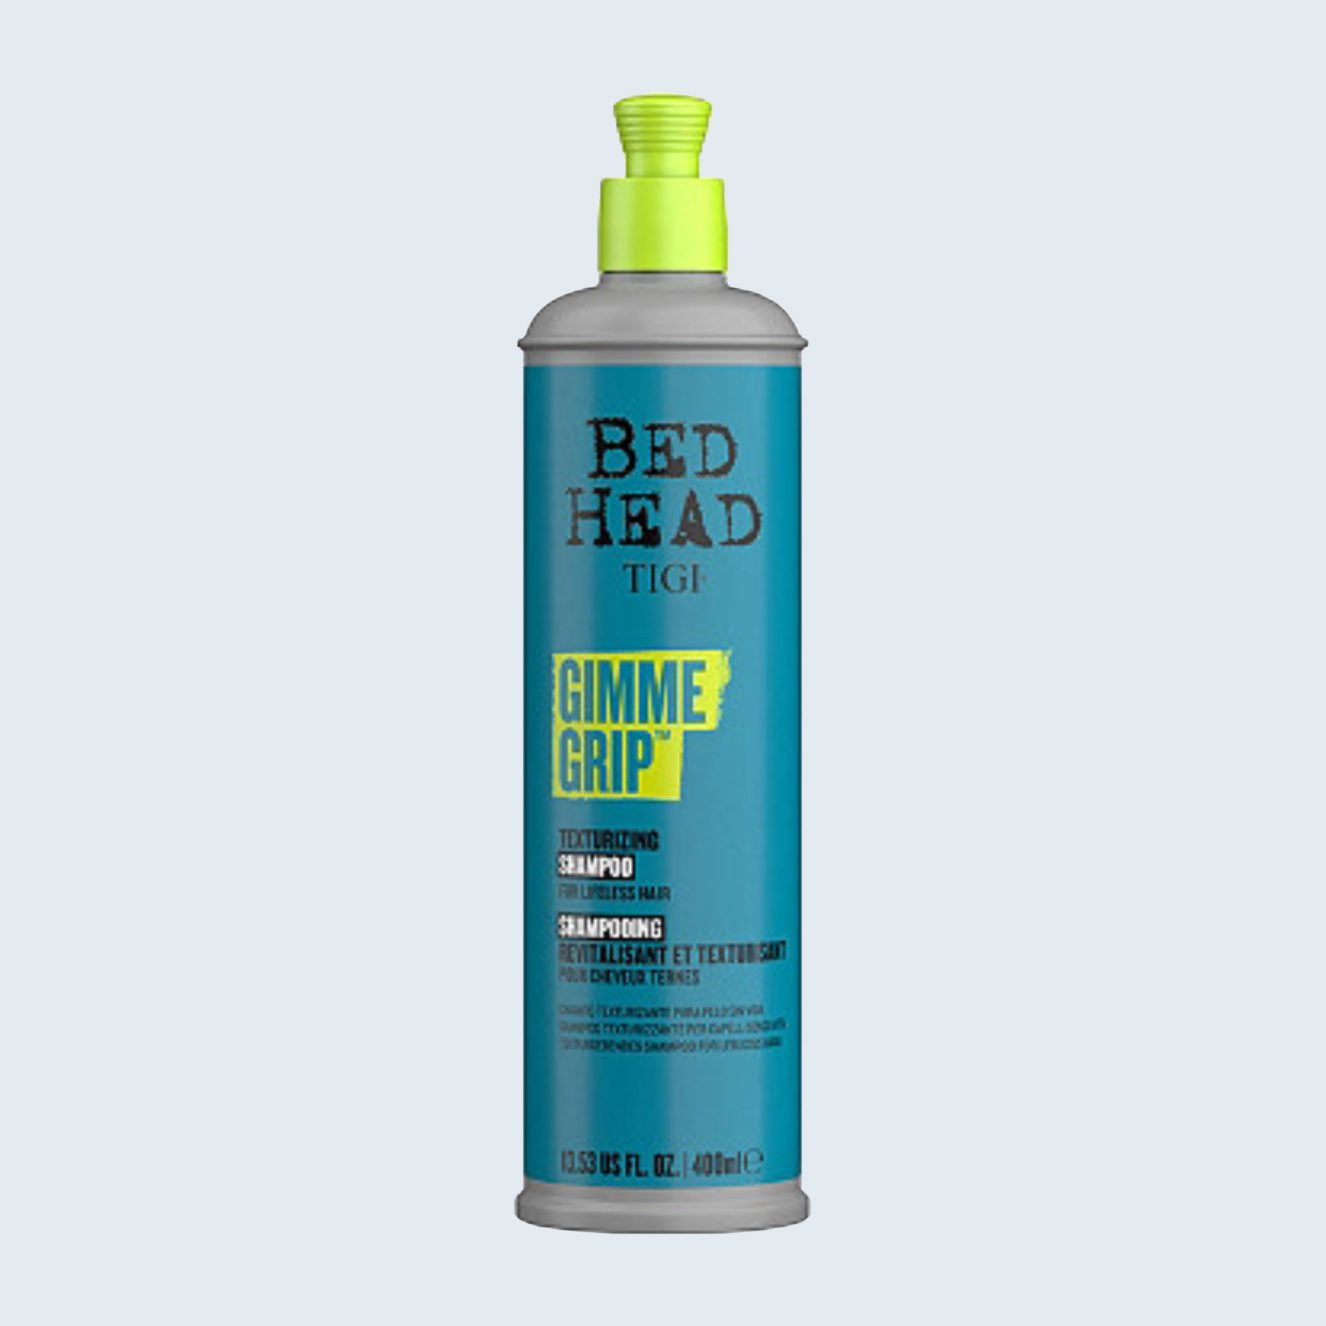 Bed Head Gimme Grip Texturizing Shampoo